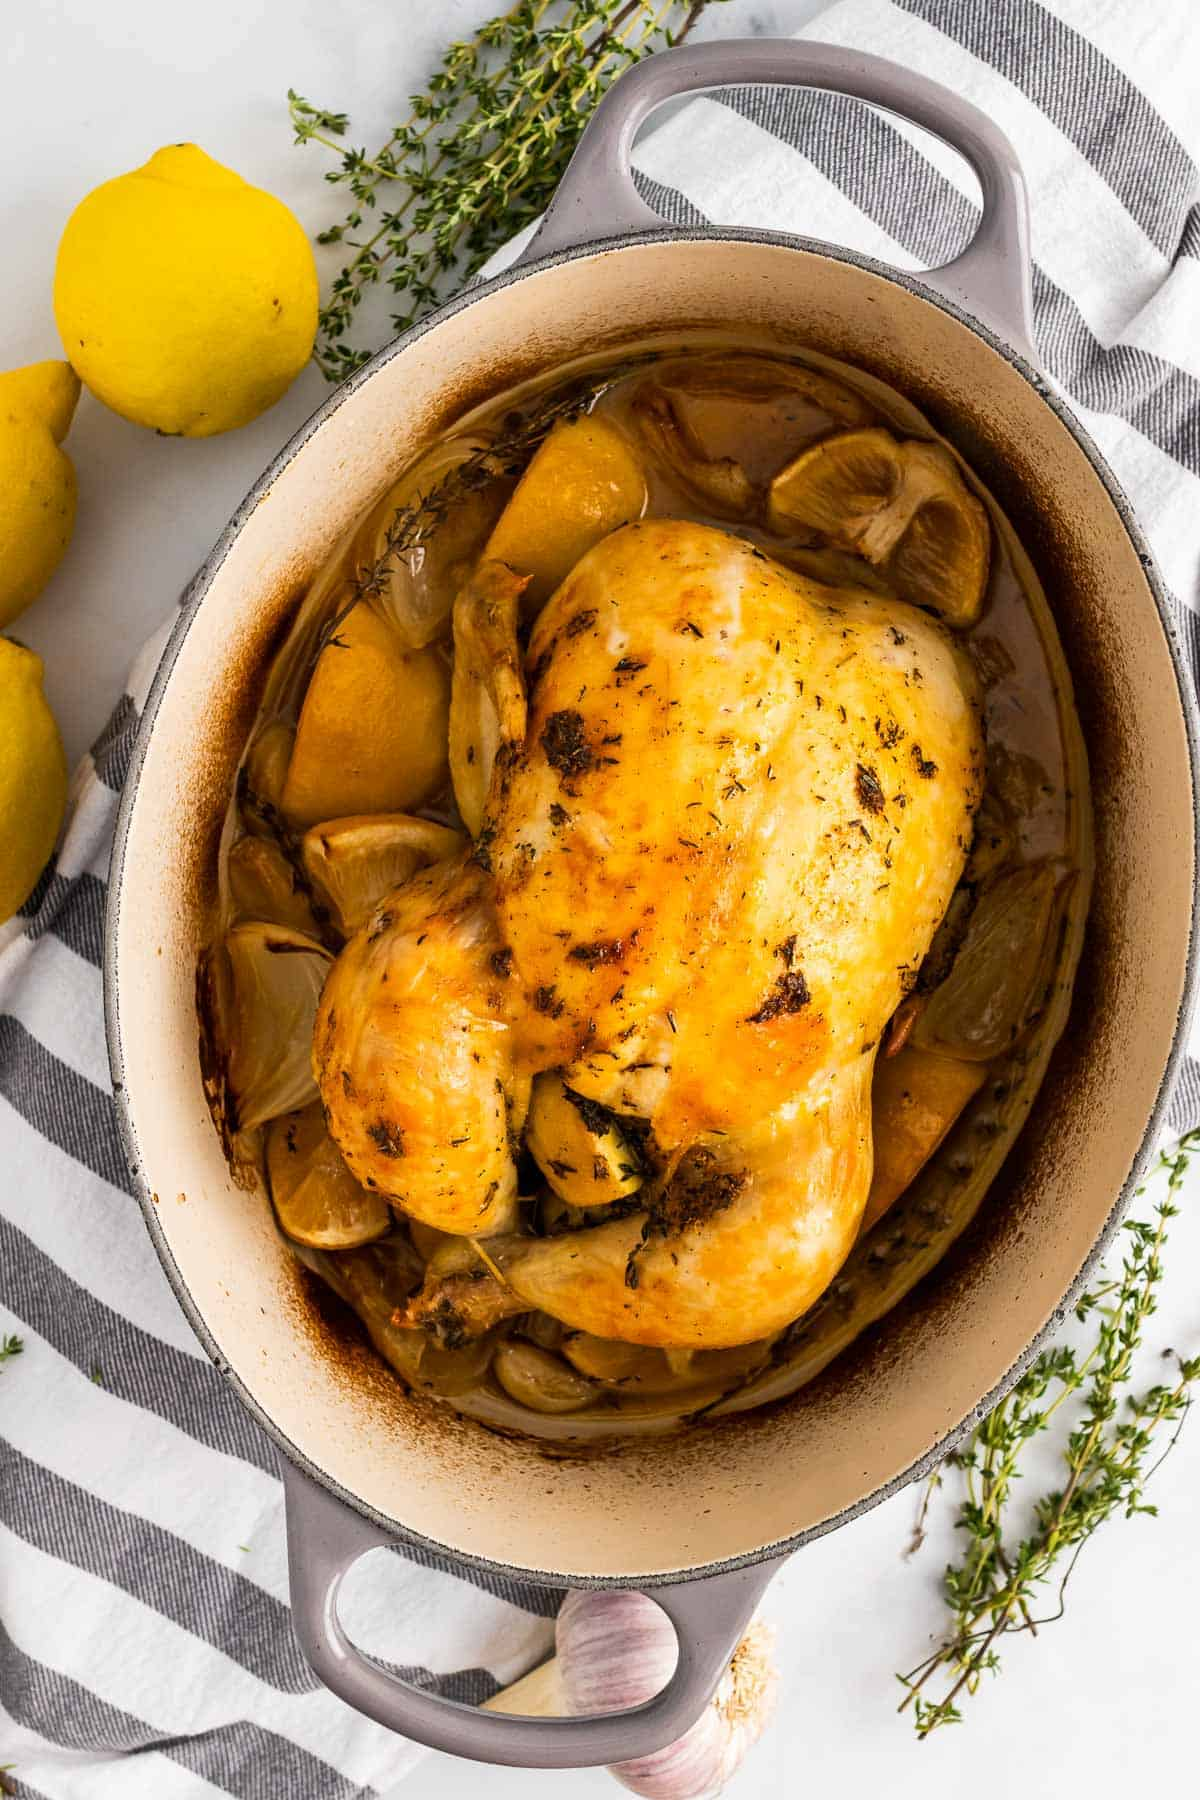 Whole chicken finished cooking and resting in the dutch oven on top of a decorative striped napkin